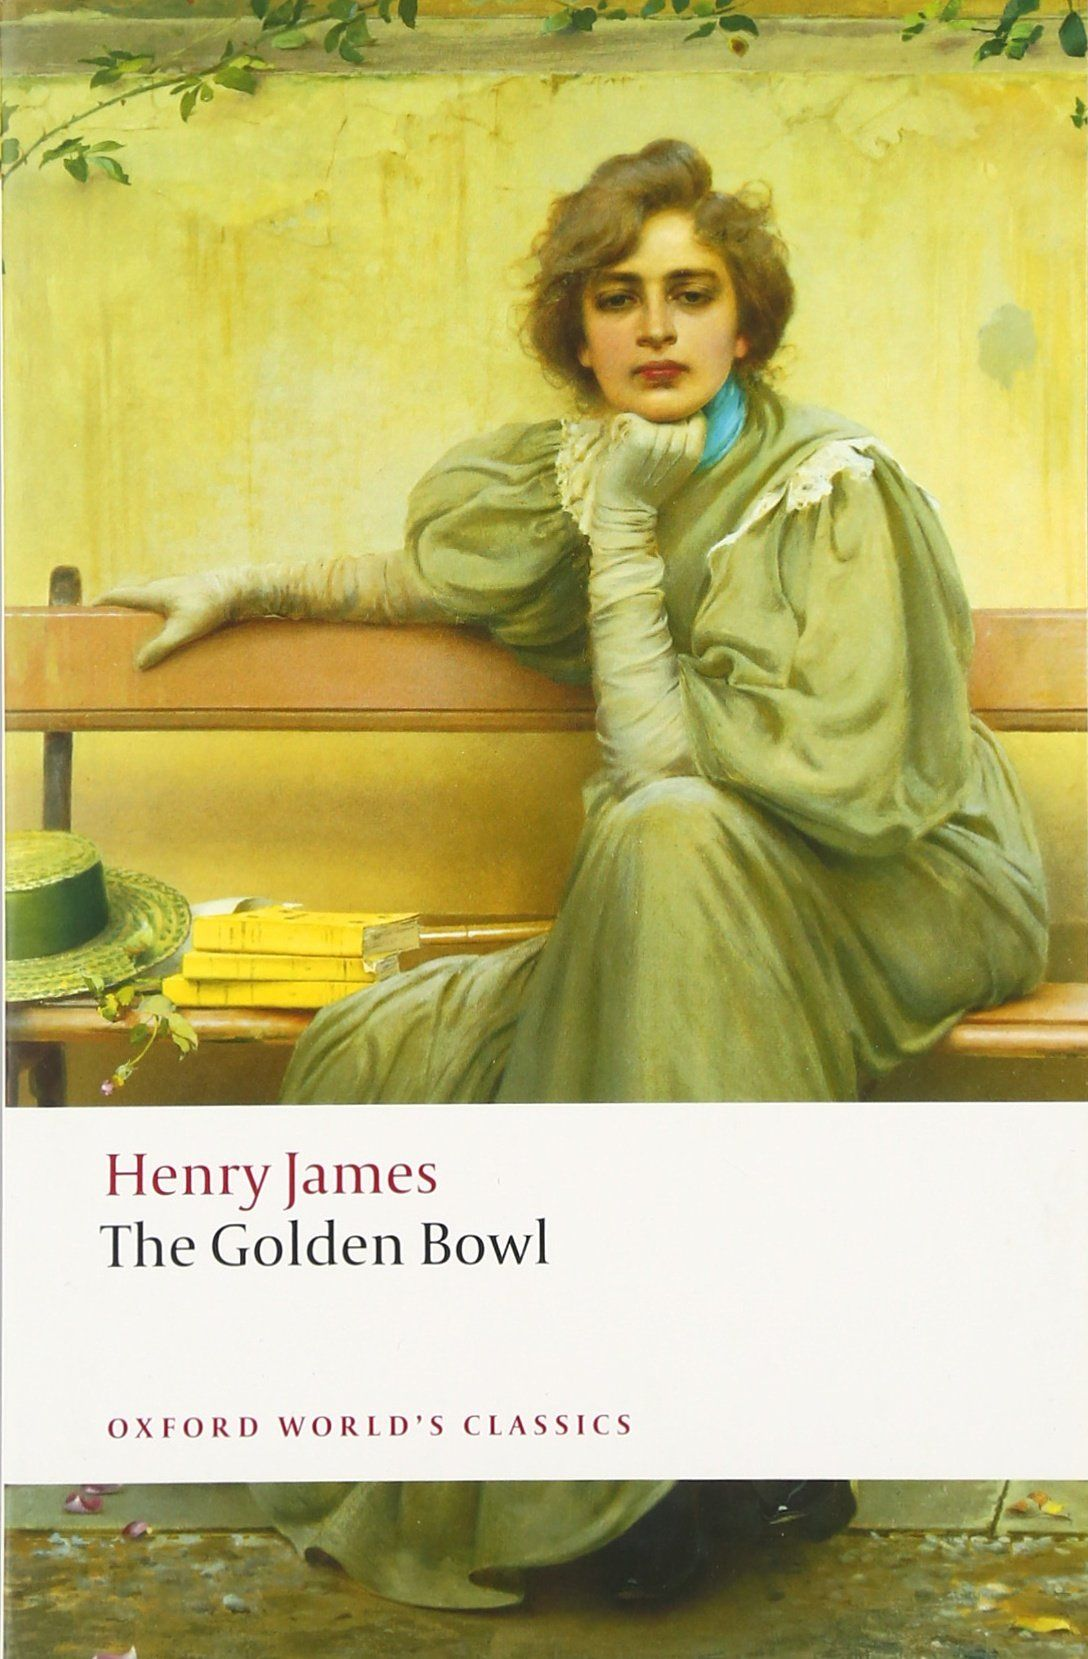 The Golden Bowl Novel by Henry James